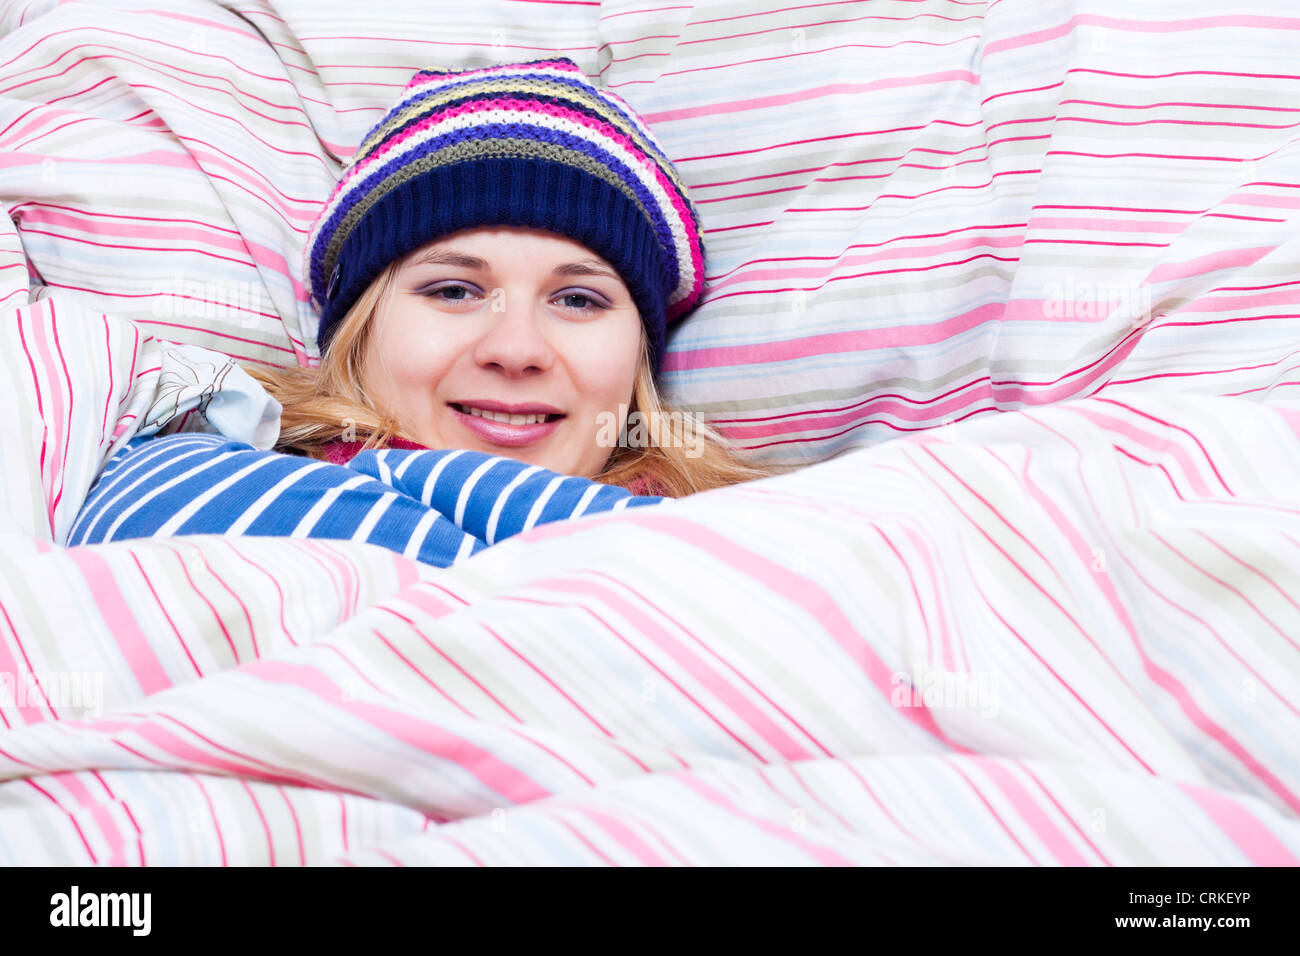 Young happy smiling woman in winter hat wrapped in duvet. - Stock Image